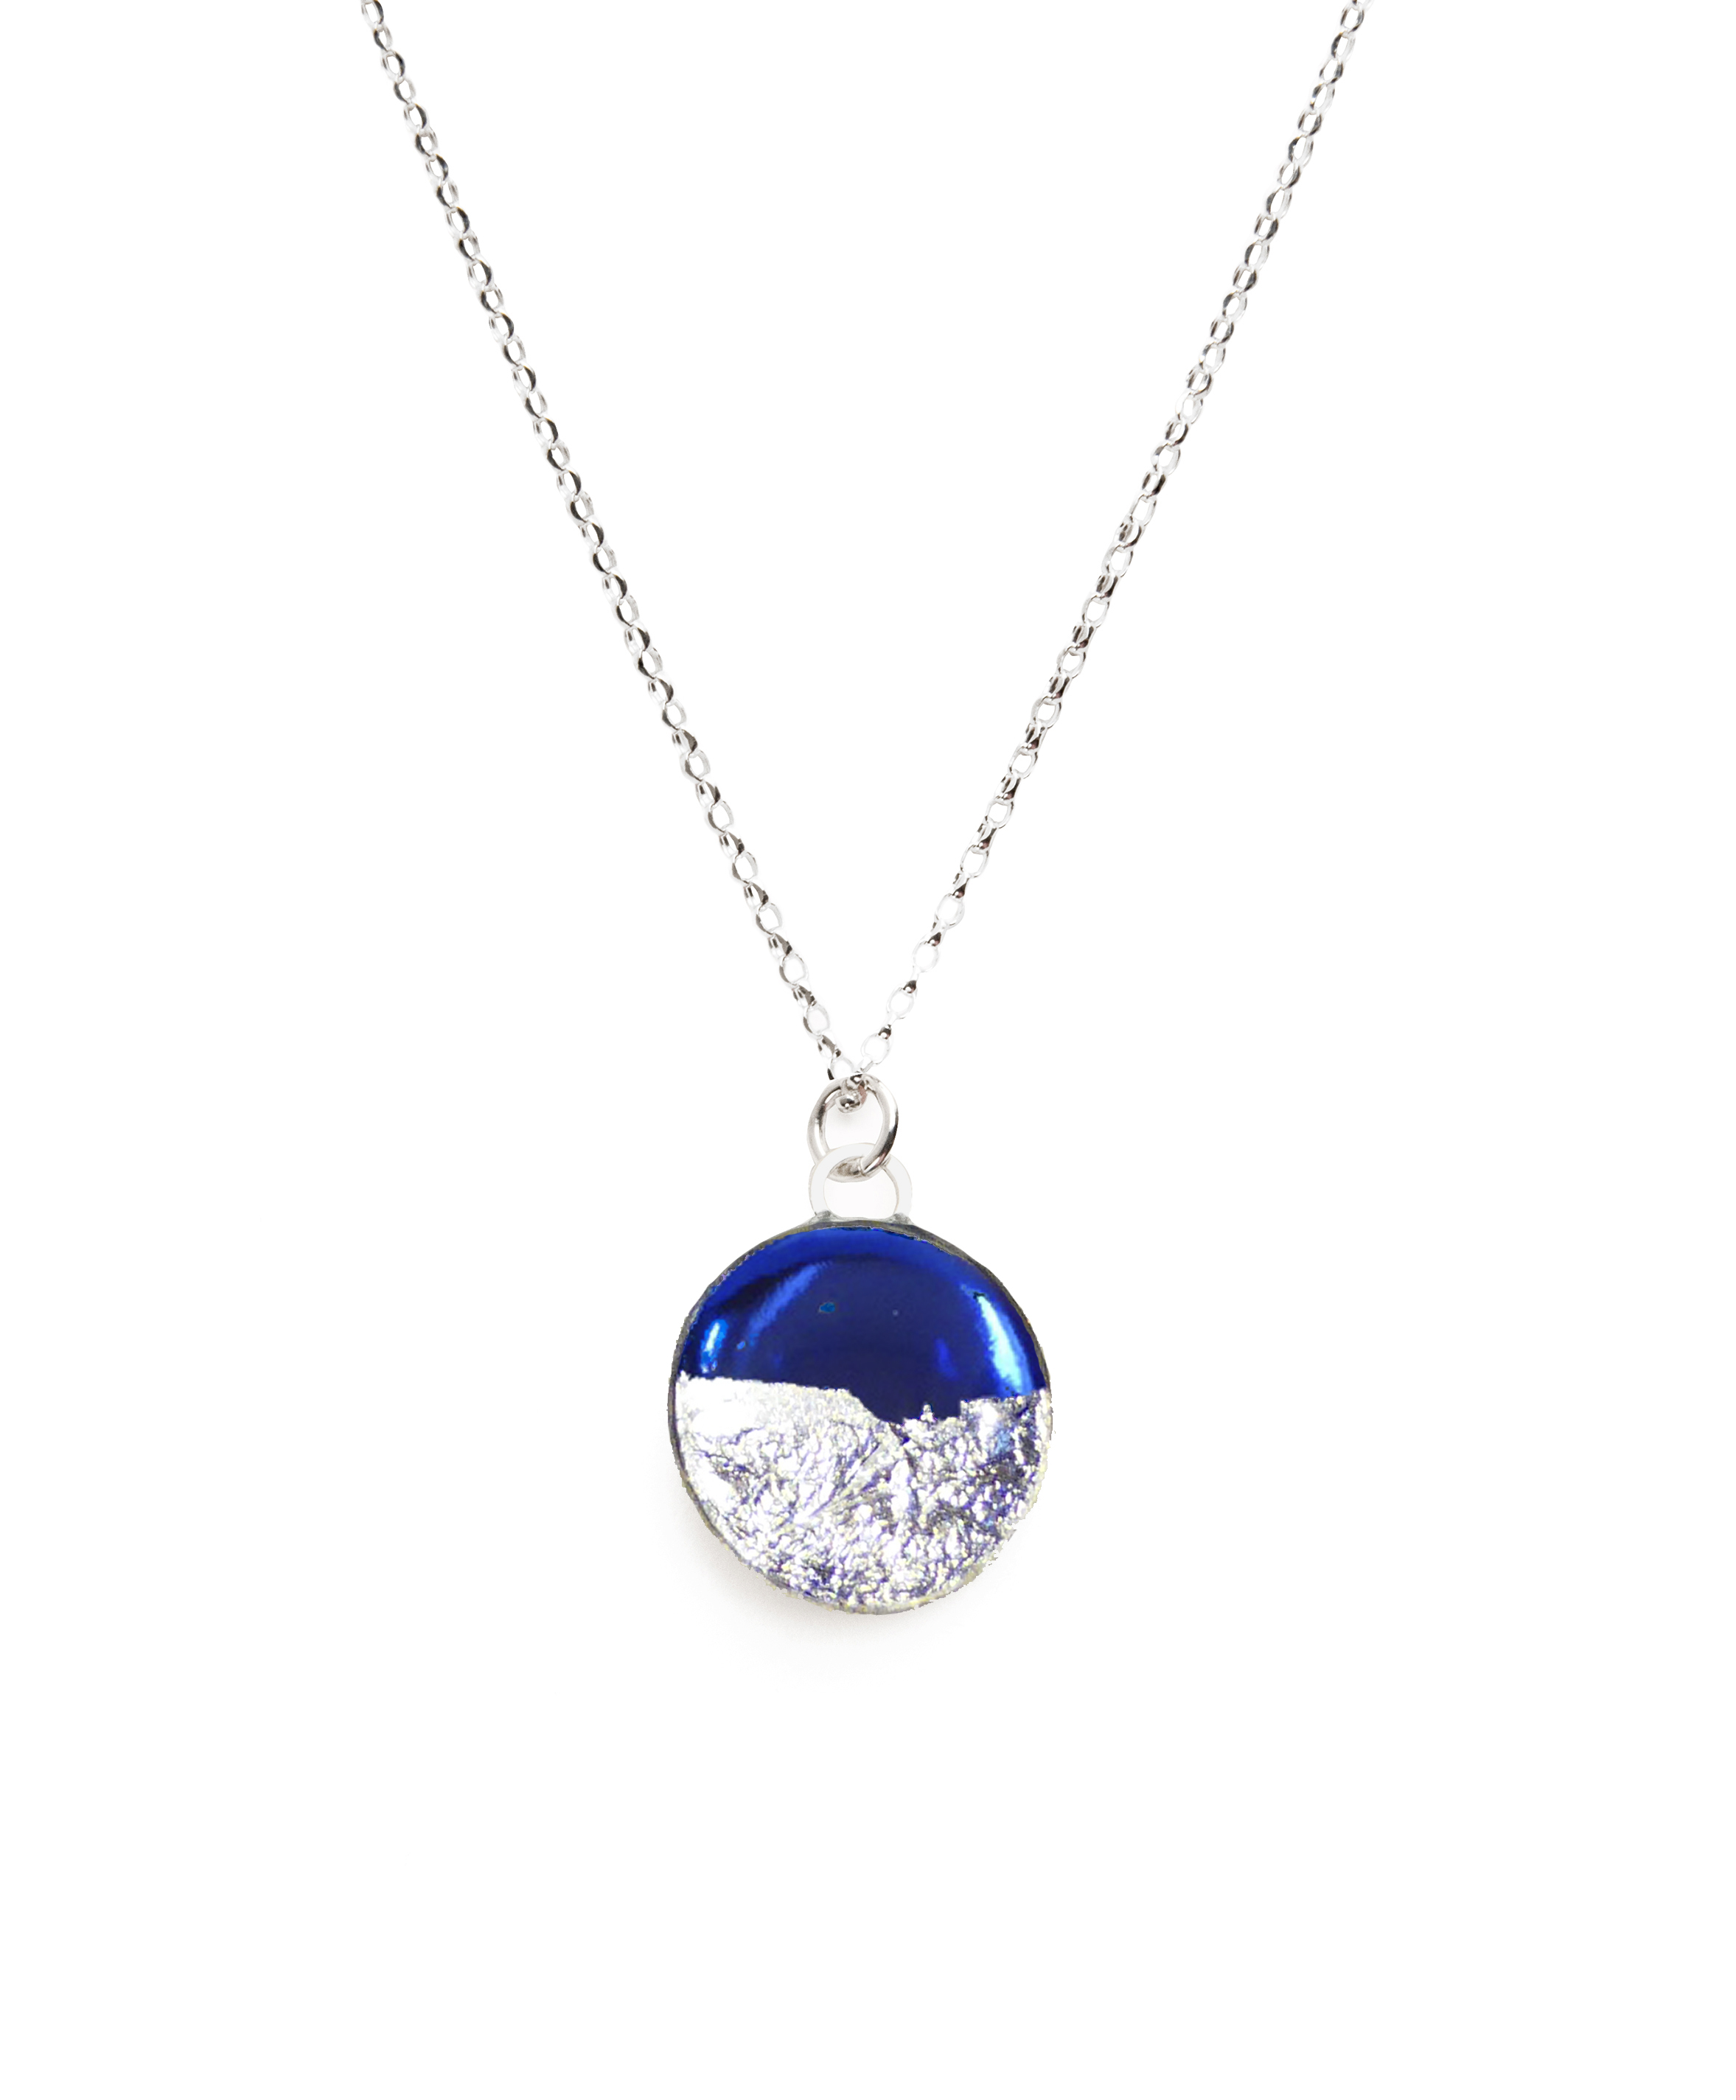 silver sterling pendant with product crystal rose swarovski oval stones blue gold plated raindrop narlino necklace